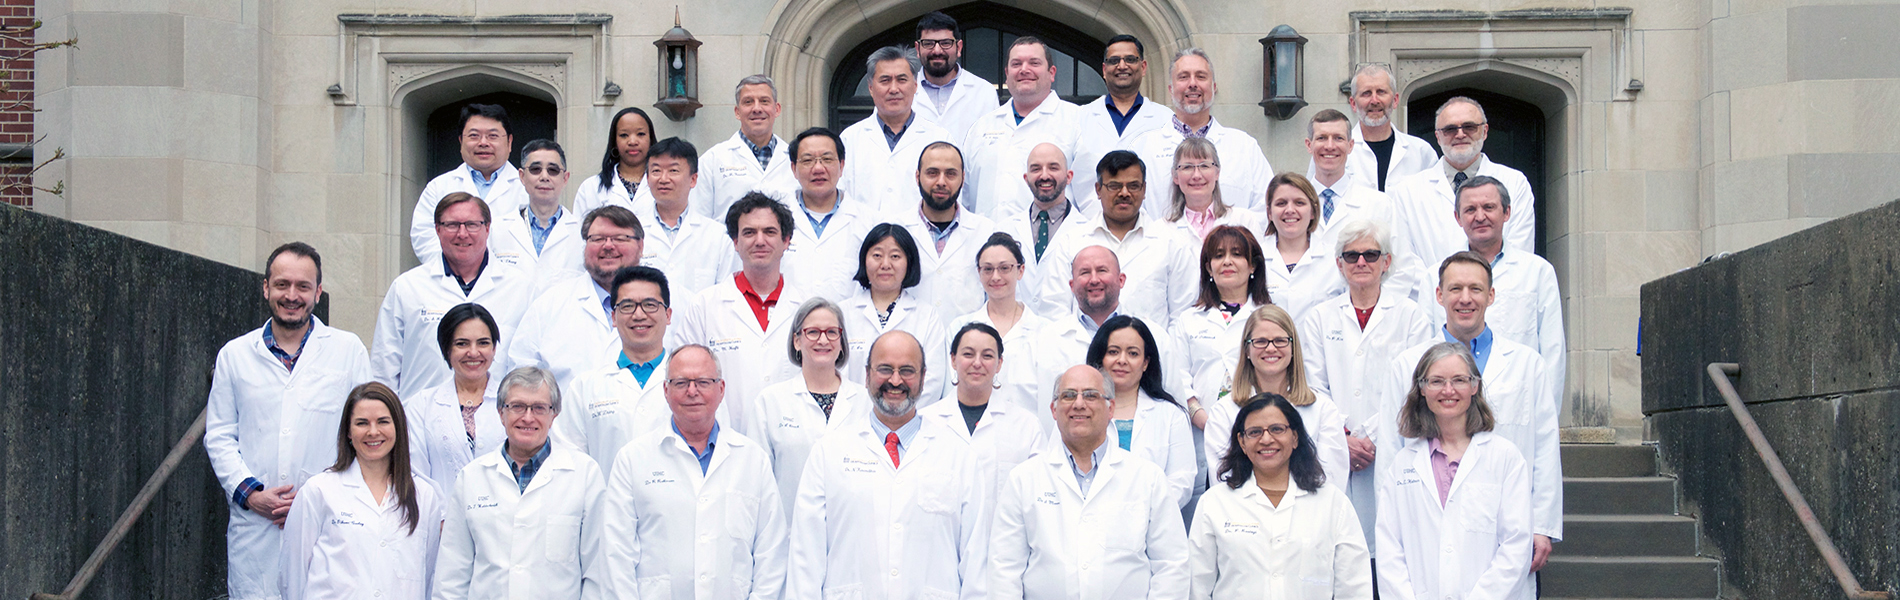 Pathology Faculty